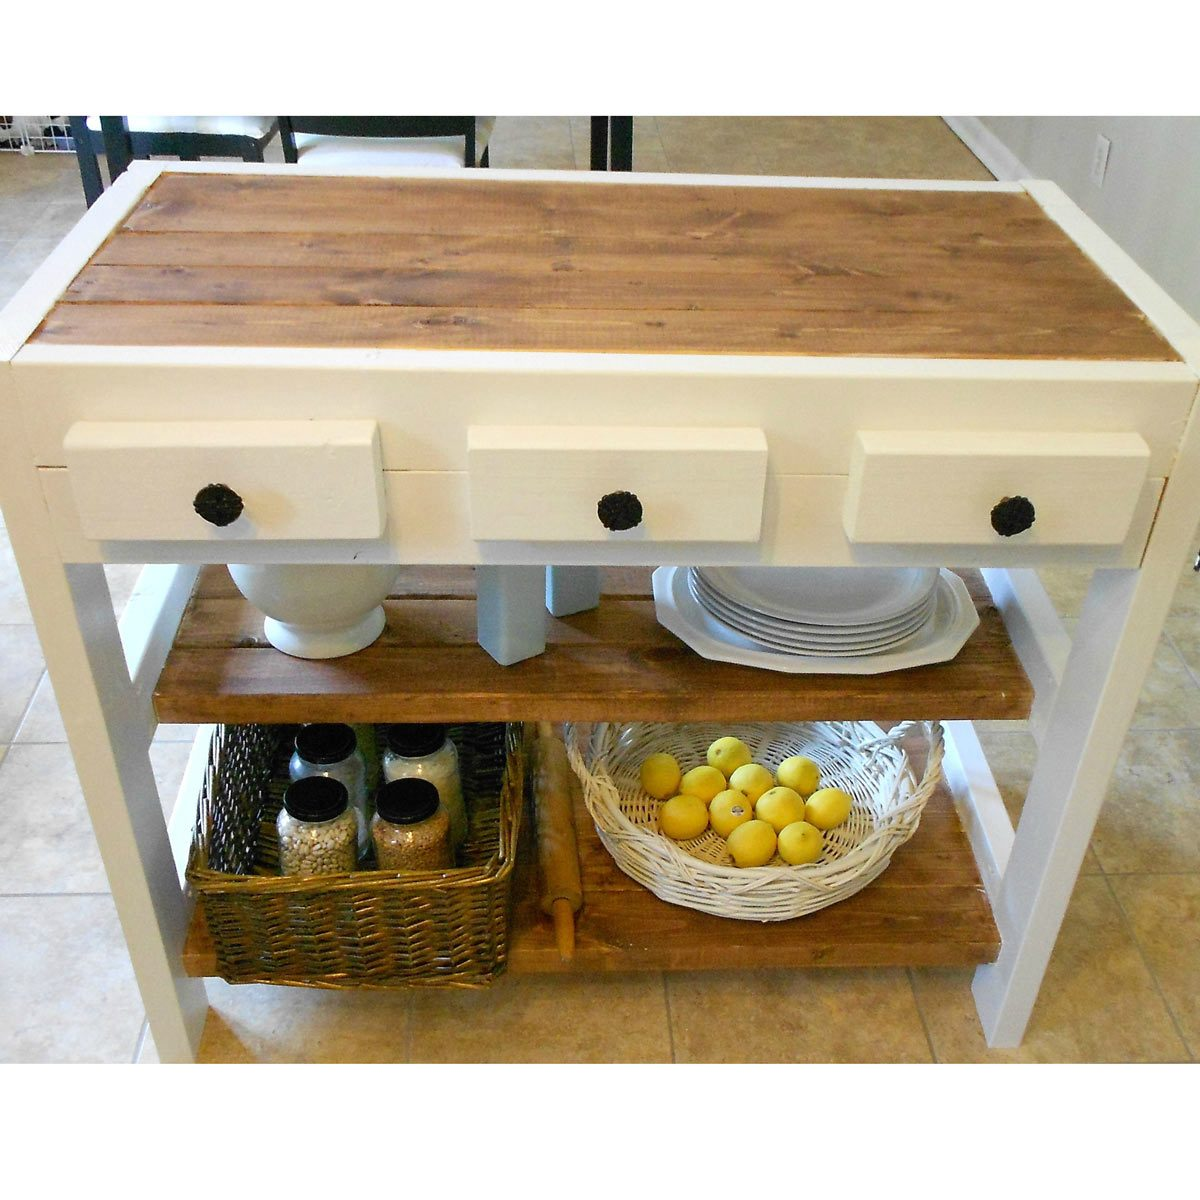 The Best DIY Kitchen Islands The Family Handyman - How to build a kitchen island with seating